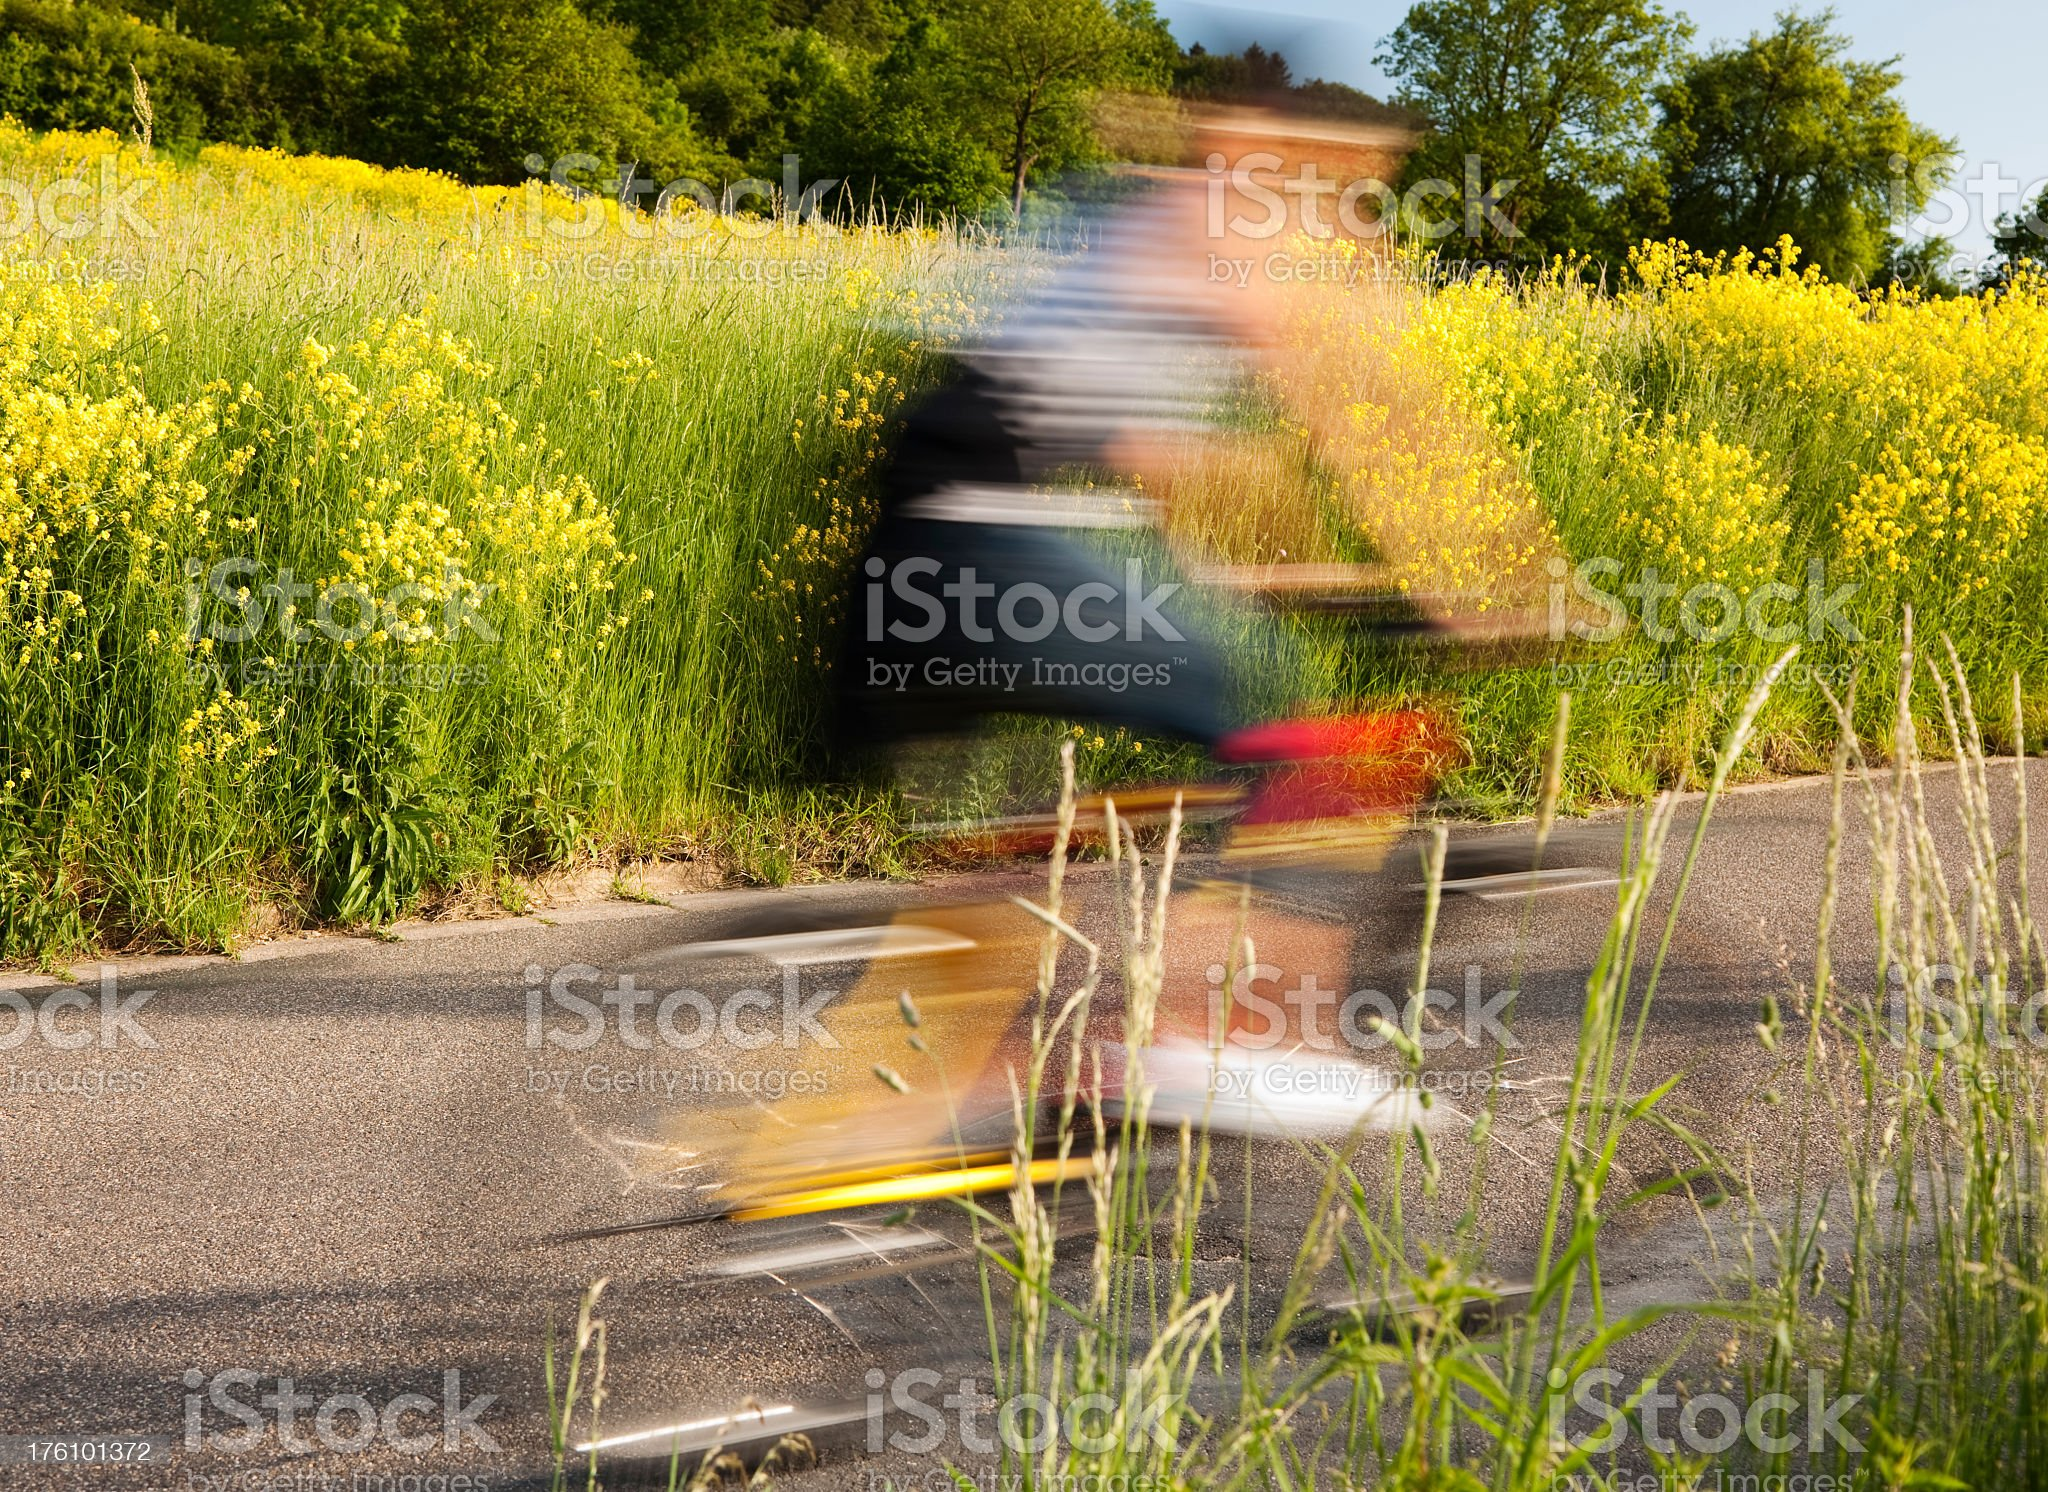 Blurred Mountain Biker Riding on Country Road royalty-free stock photo